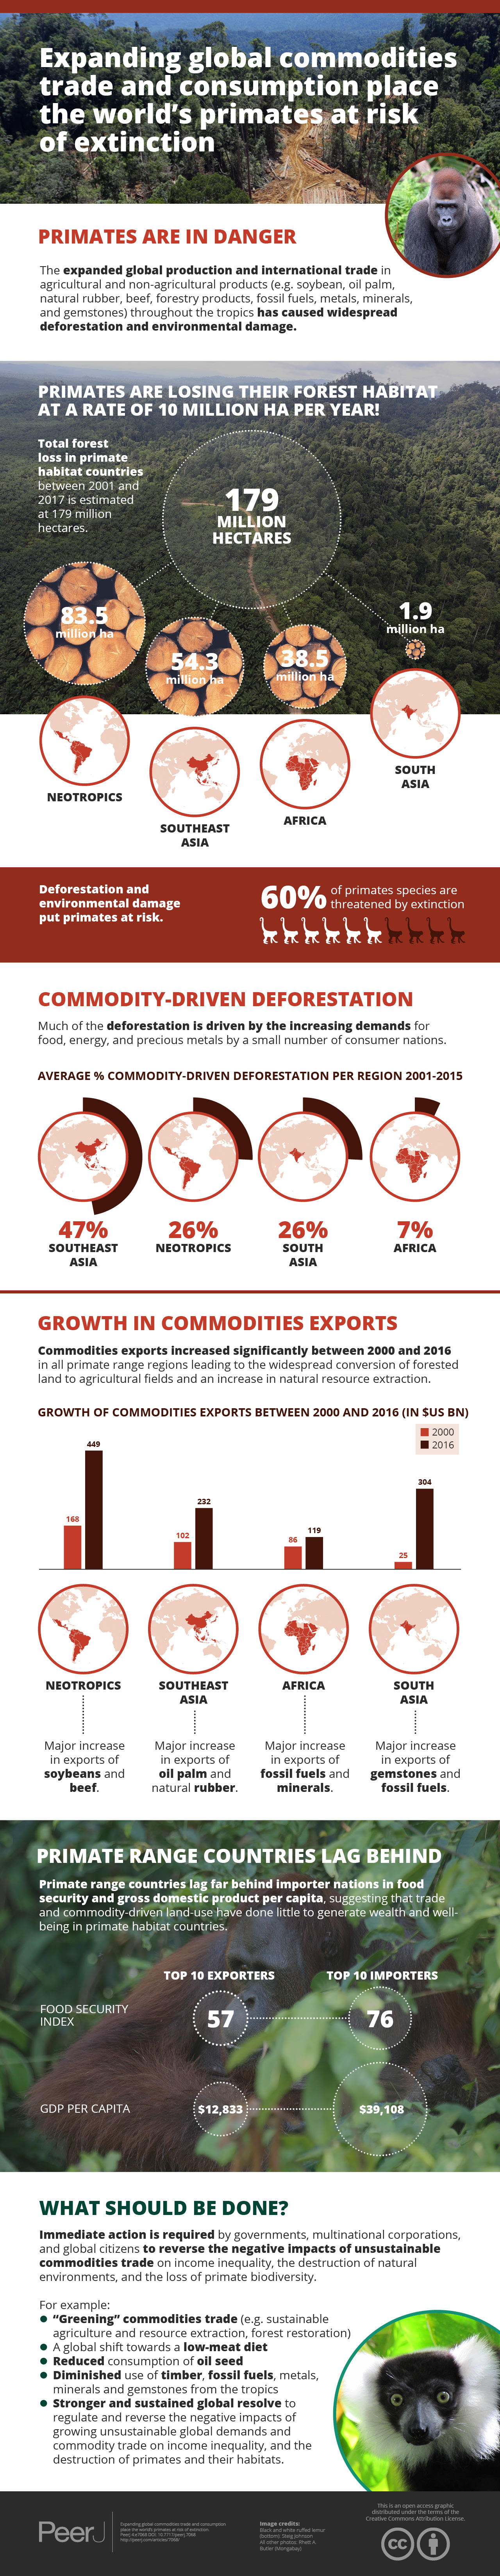 Expanding global commodities trade and consumption place the